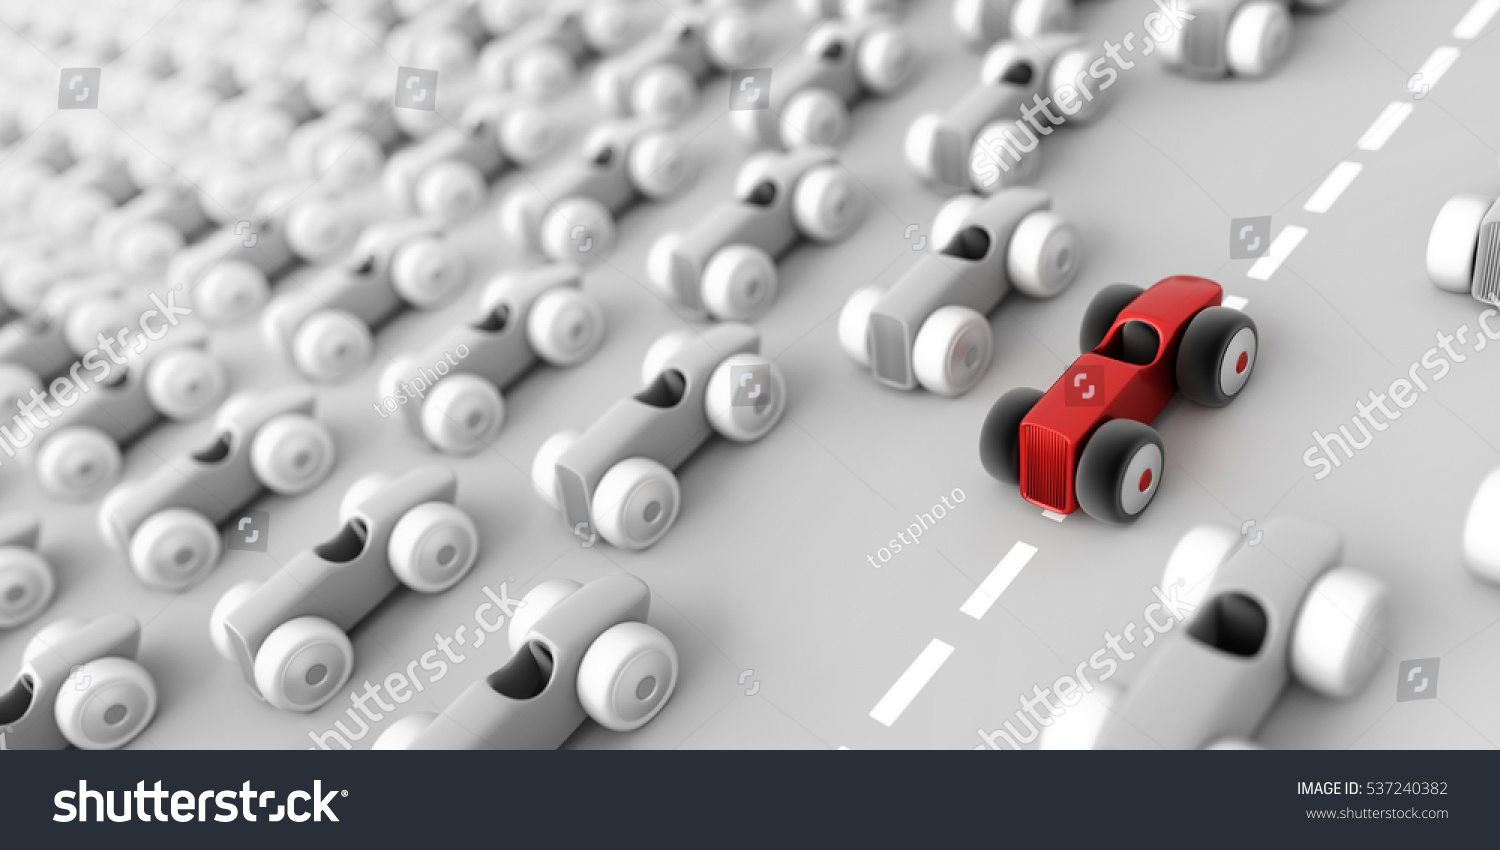 The fastest race car business and leadership concepts 3D rendering horizontal background